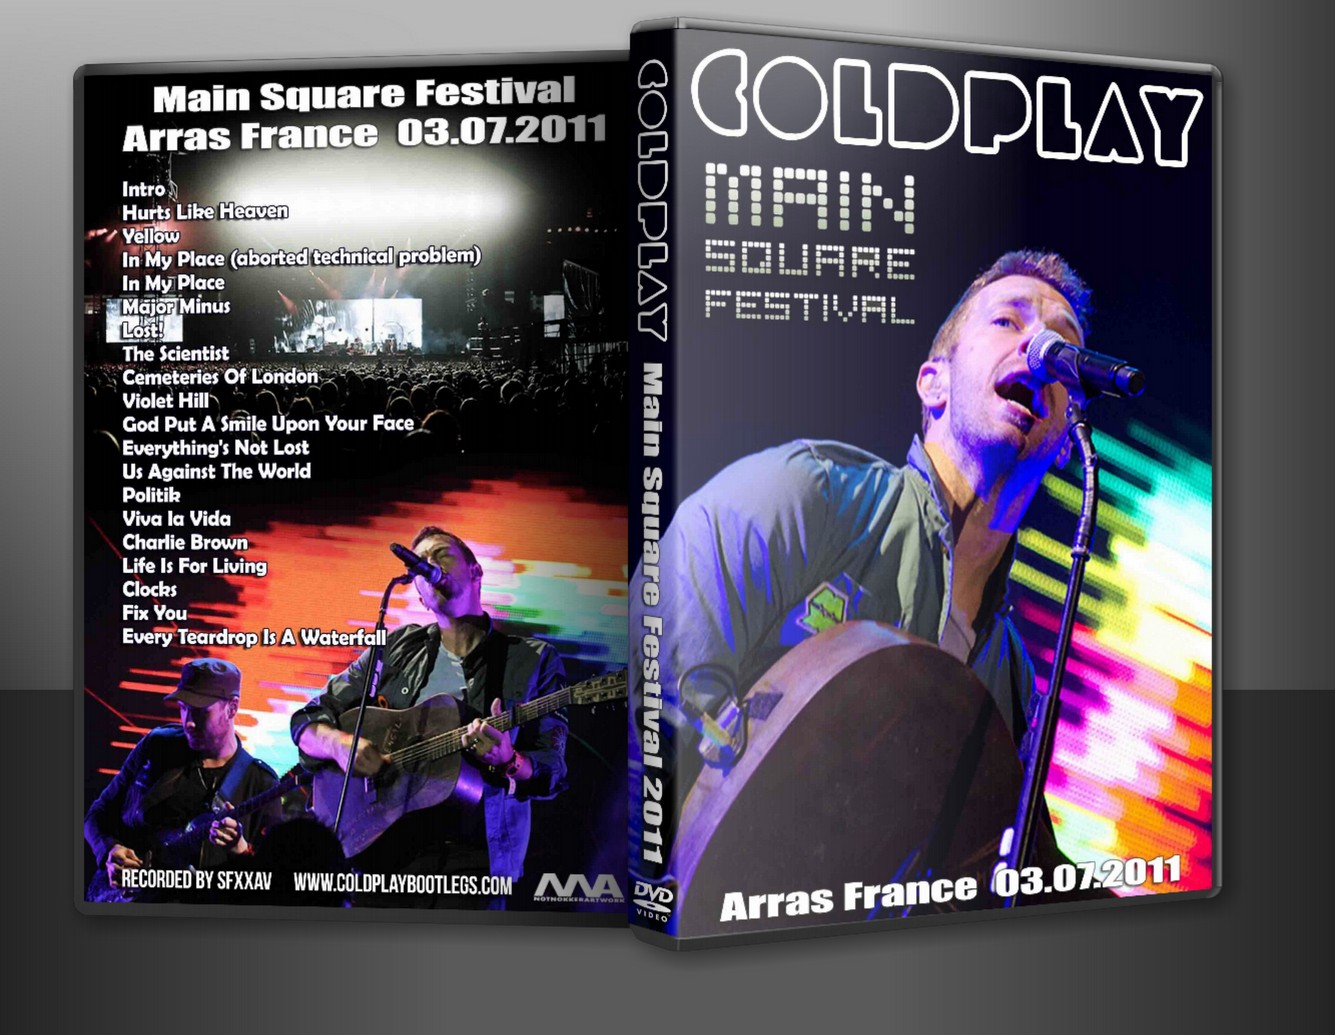 DVD Concert TH Power By Deer 5001: Coldplay - 2011-07-03 - Main Square Festival; Arras. France (DVD5/PAL/ProShot)